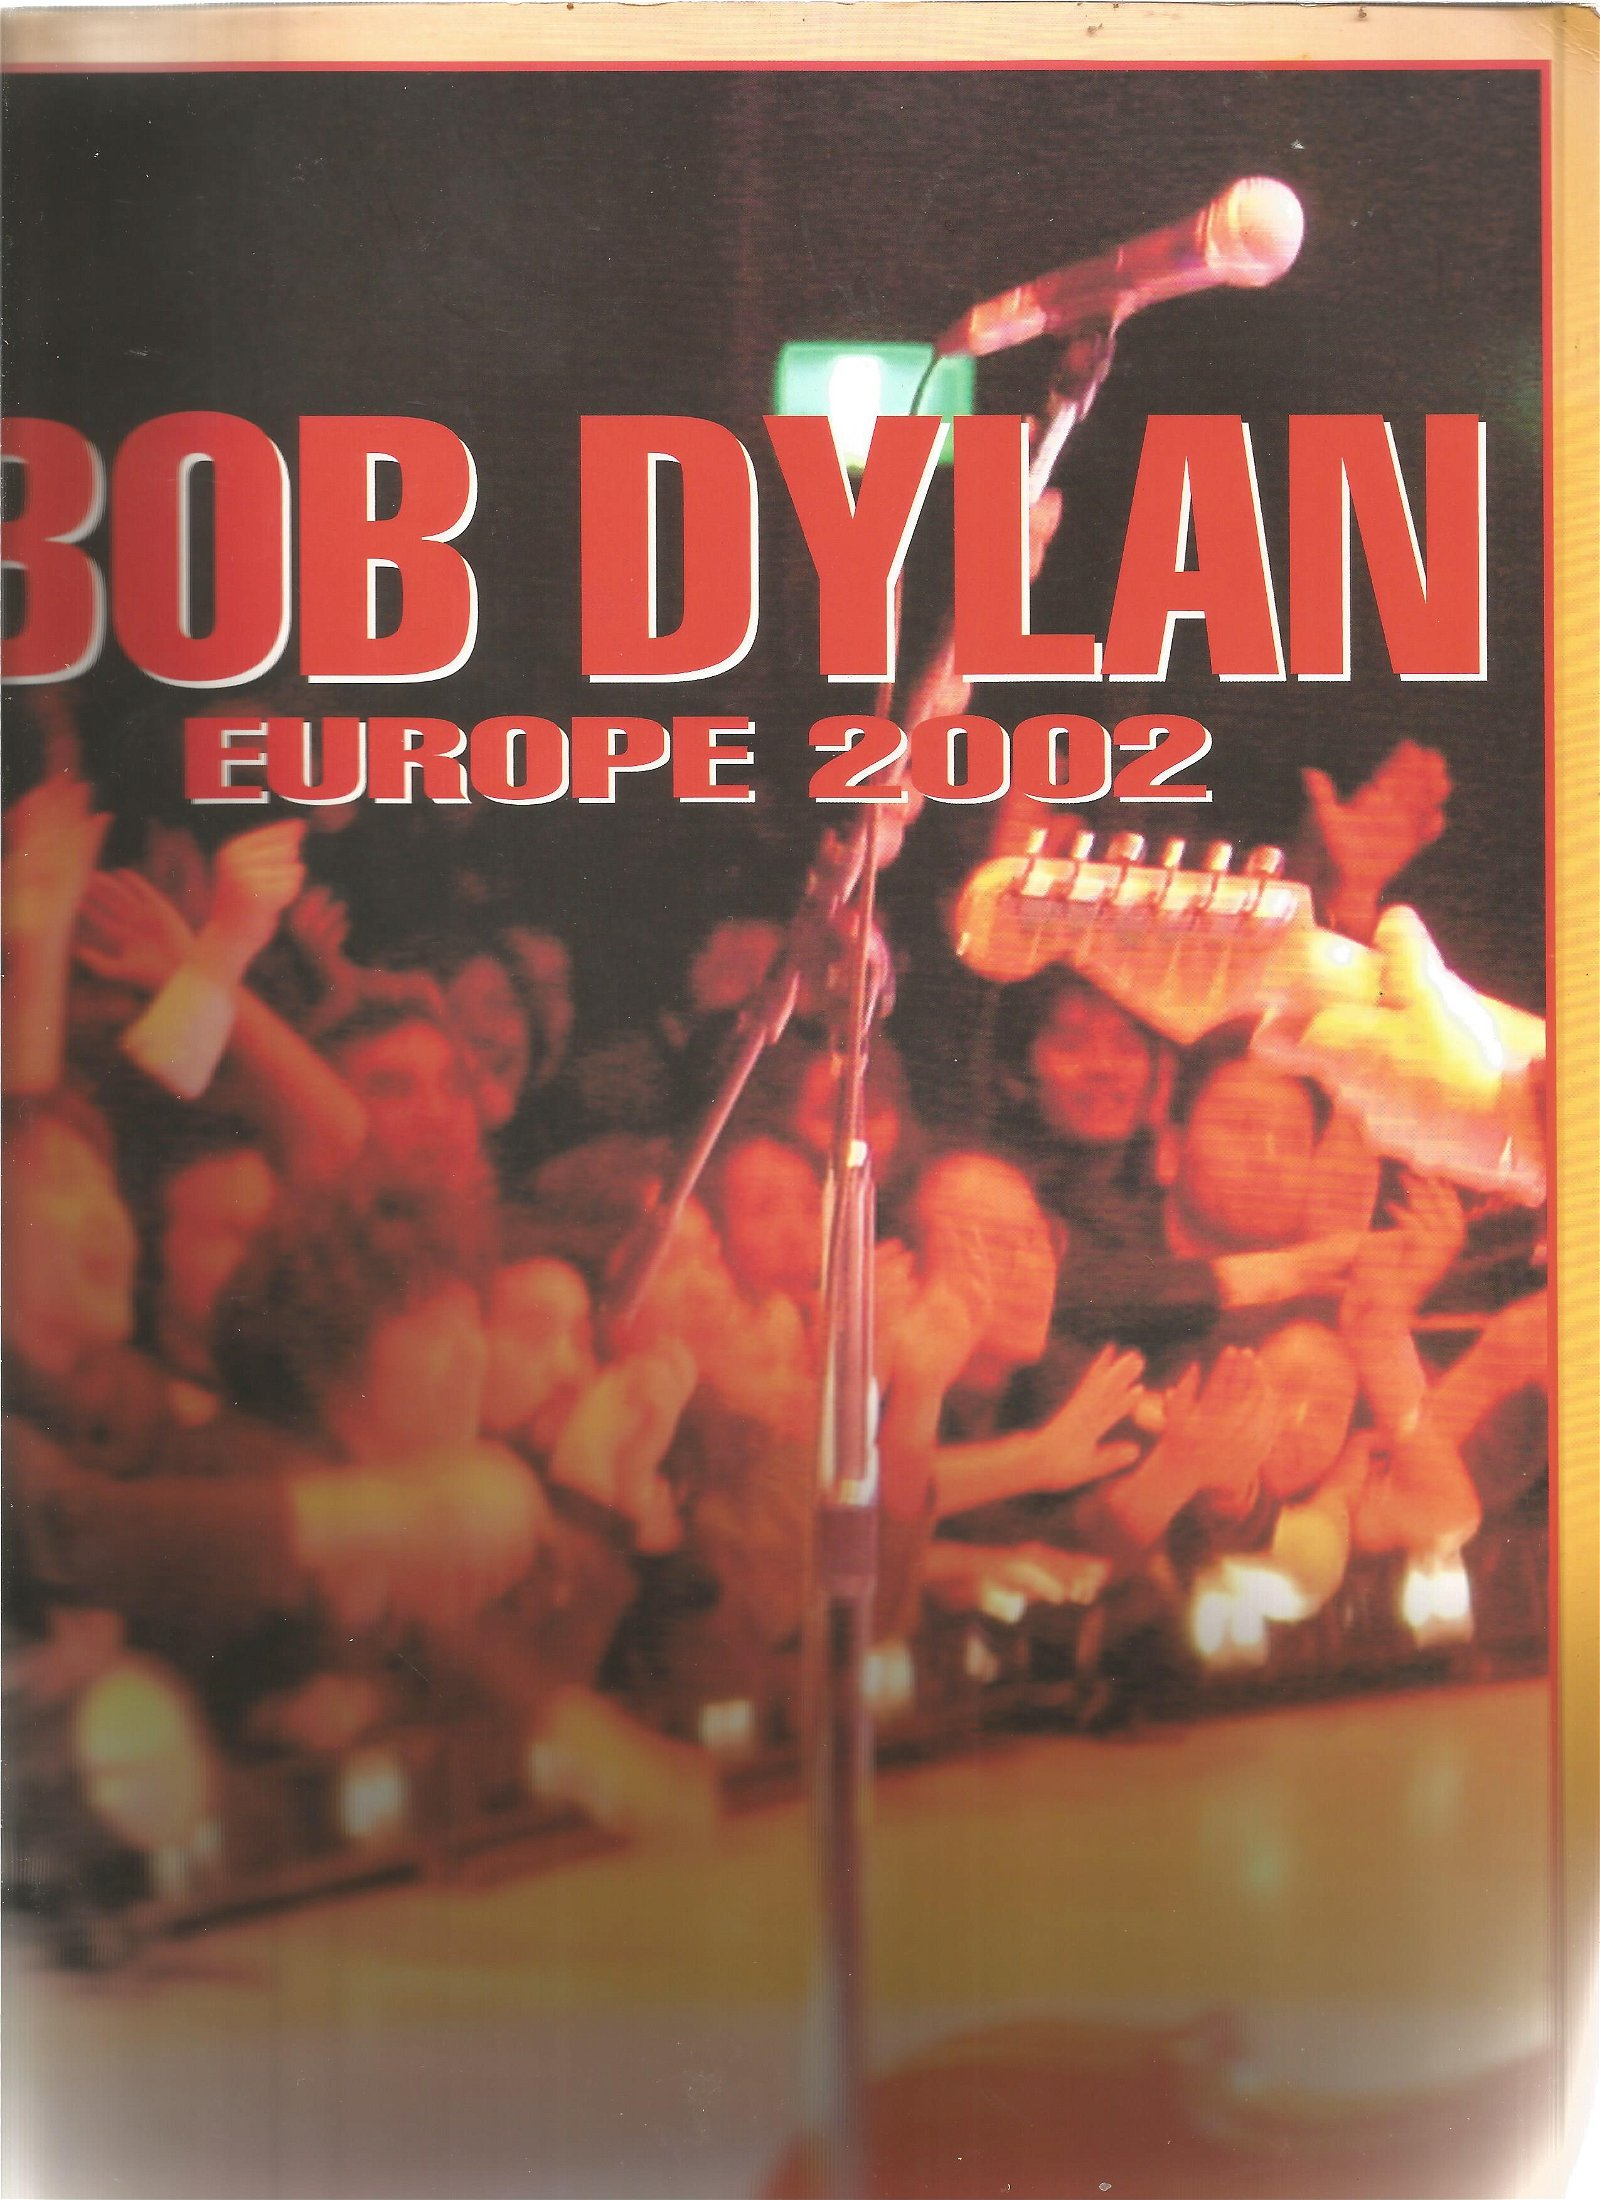 UNSIGNED Bob Dylan Europe 2002 programme. Good